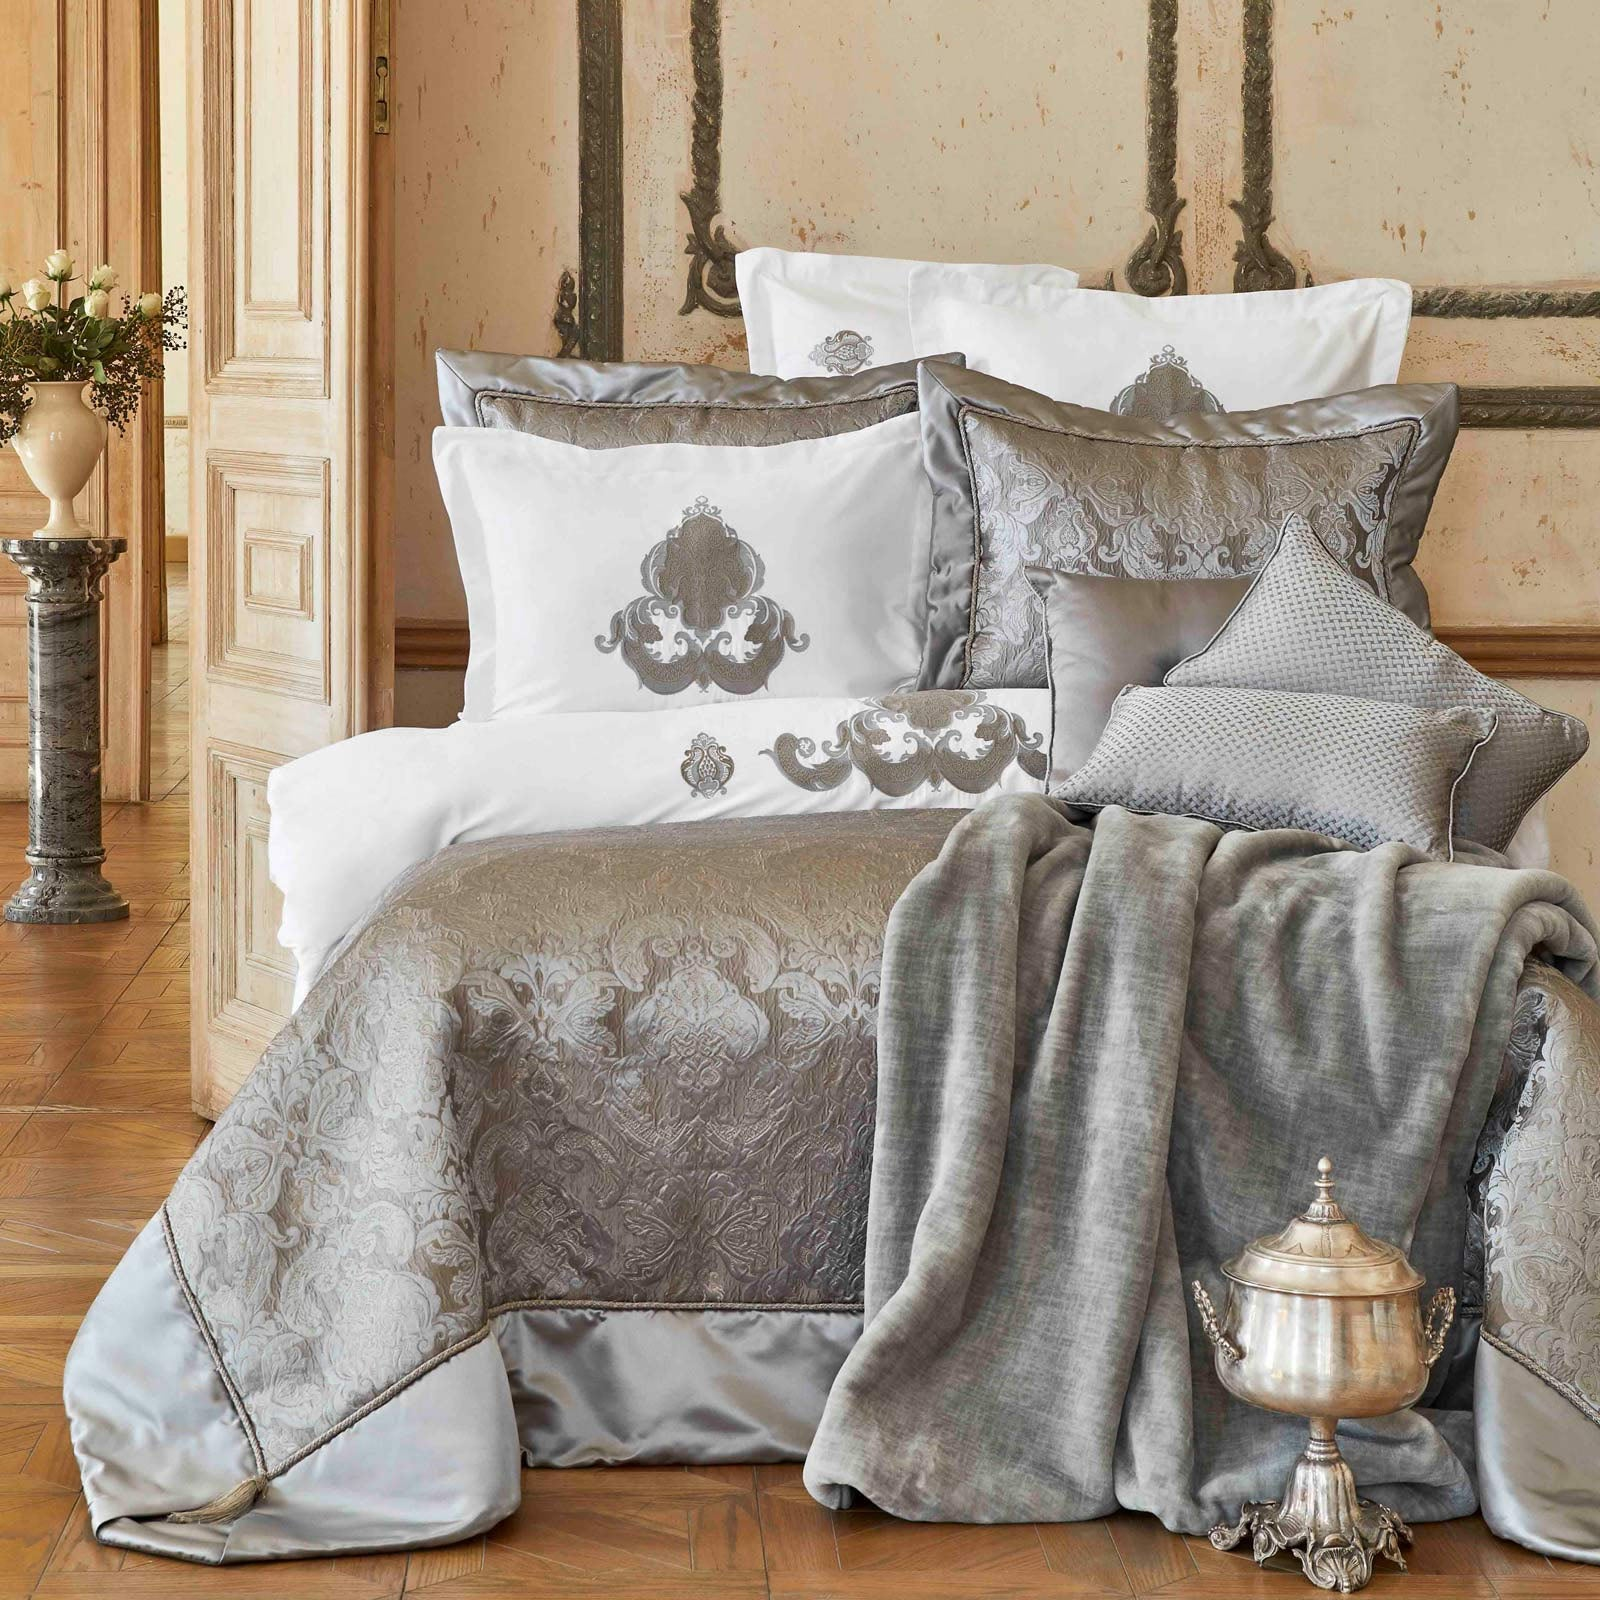 Karaca Home Cornelia Anthracite 6 Piece Silk Private Bed Cover 200.17.01.0116 -  كاراحا هوم كورنيليا أنثرا سايت 6 قطع غطاء سرير حريري خاص - Shop Online Furniture and Home Decor Store in Dubai, UAE at ebarza